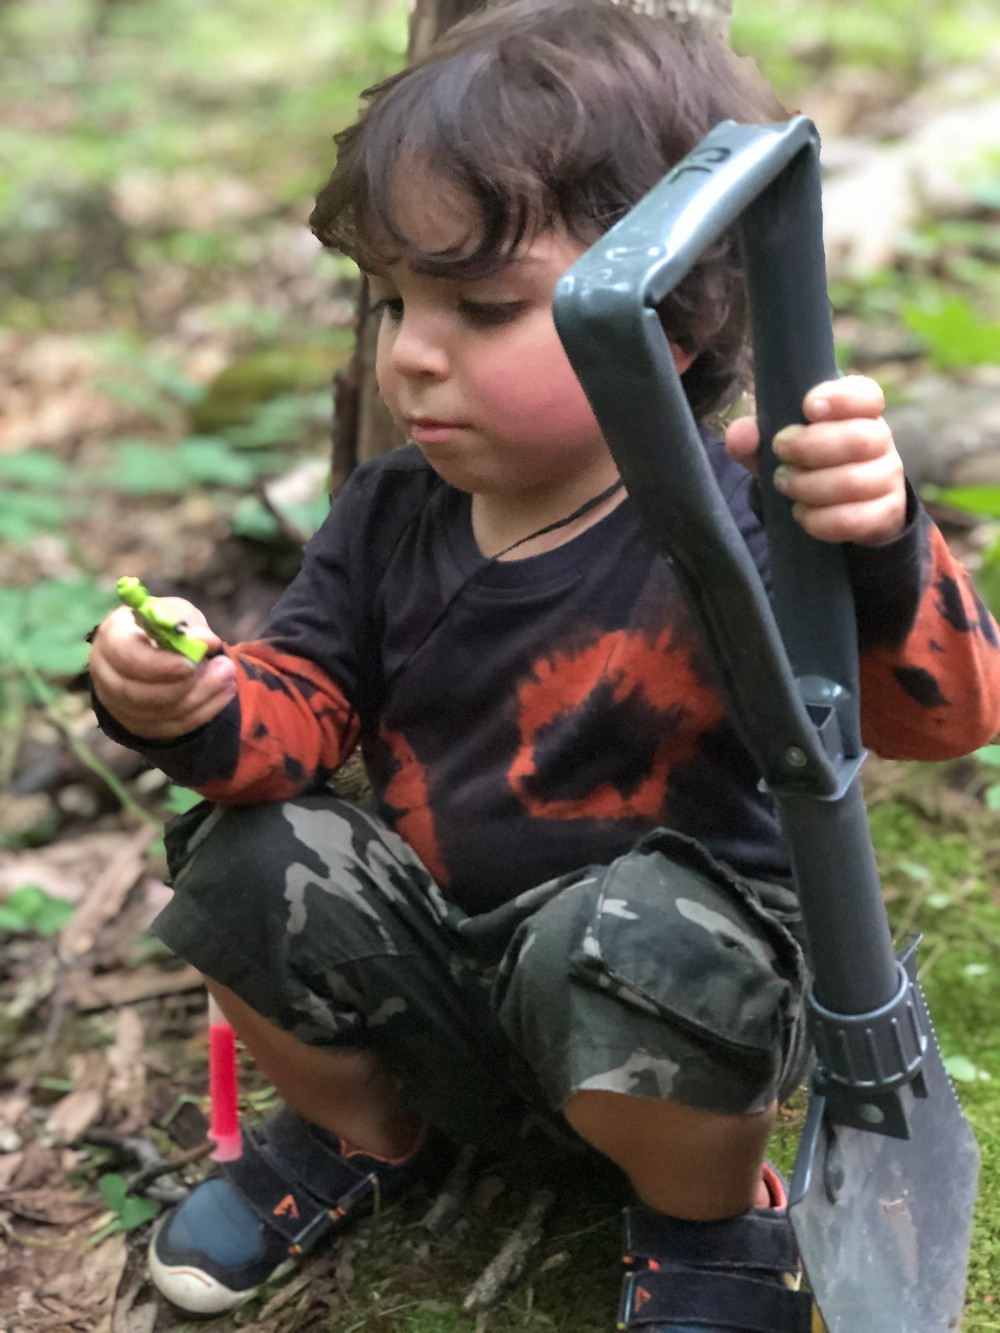 A child holds a toy figurine and a spade in either hand.